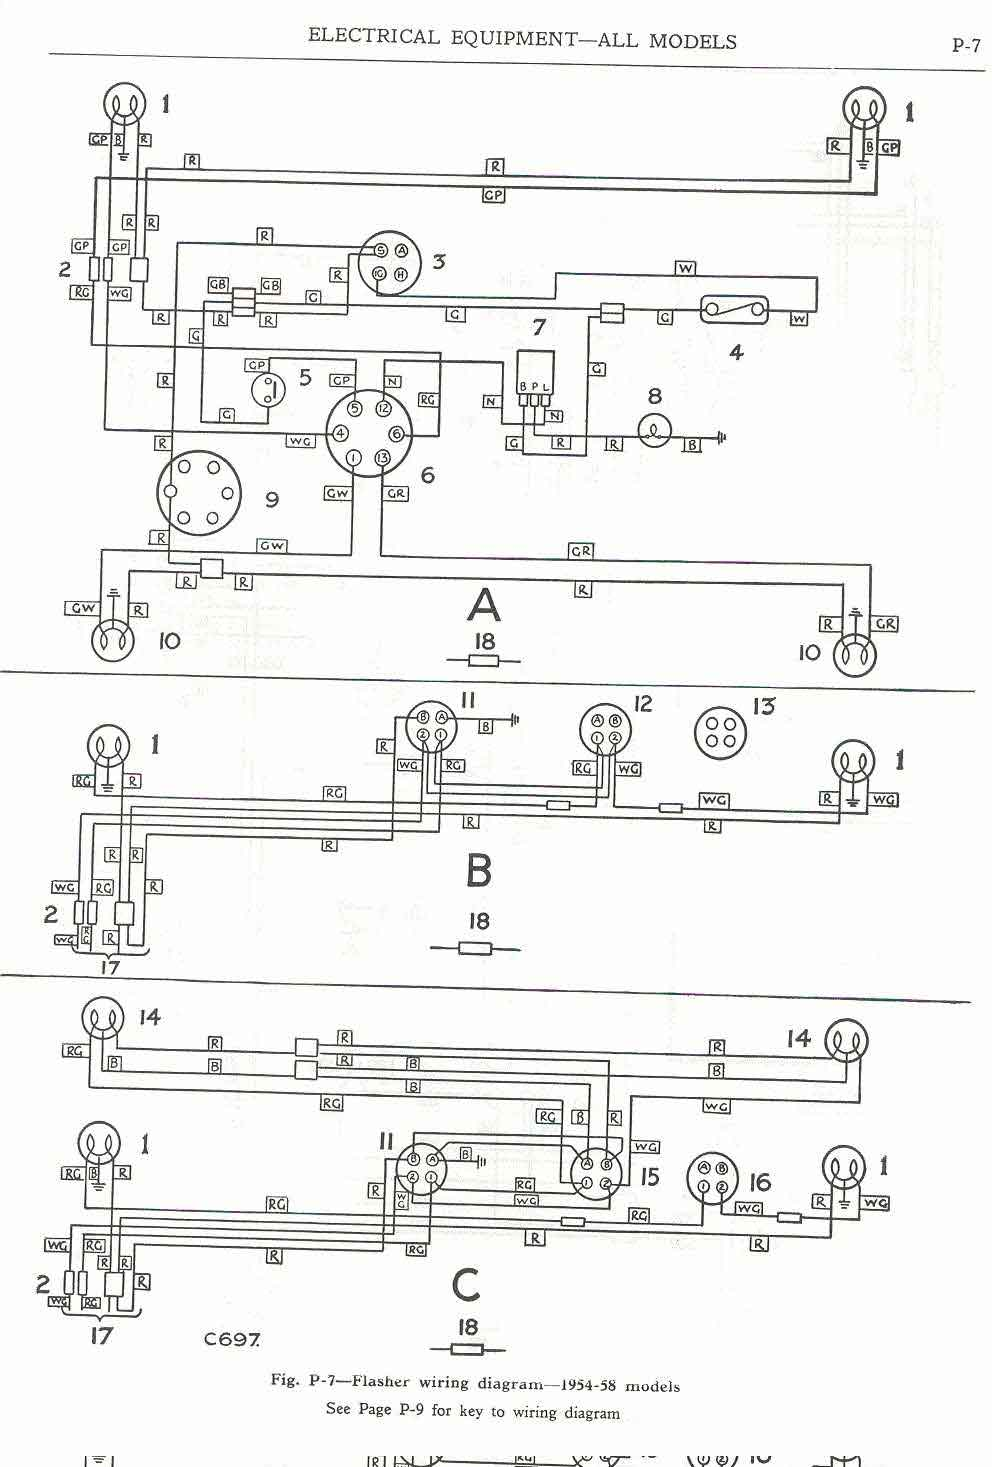 land rover 109 v8 wiring diagram land rover 110 v8 wiring diagram